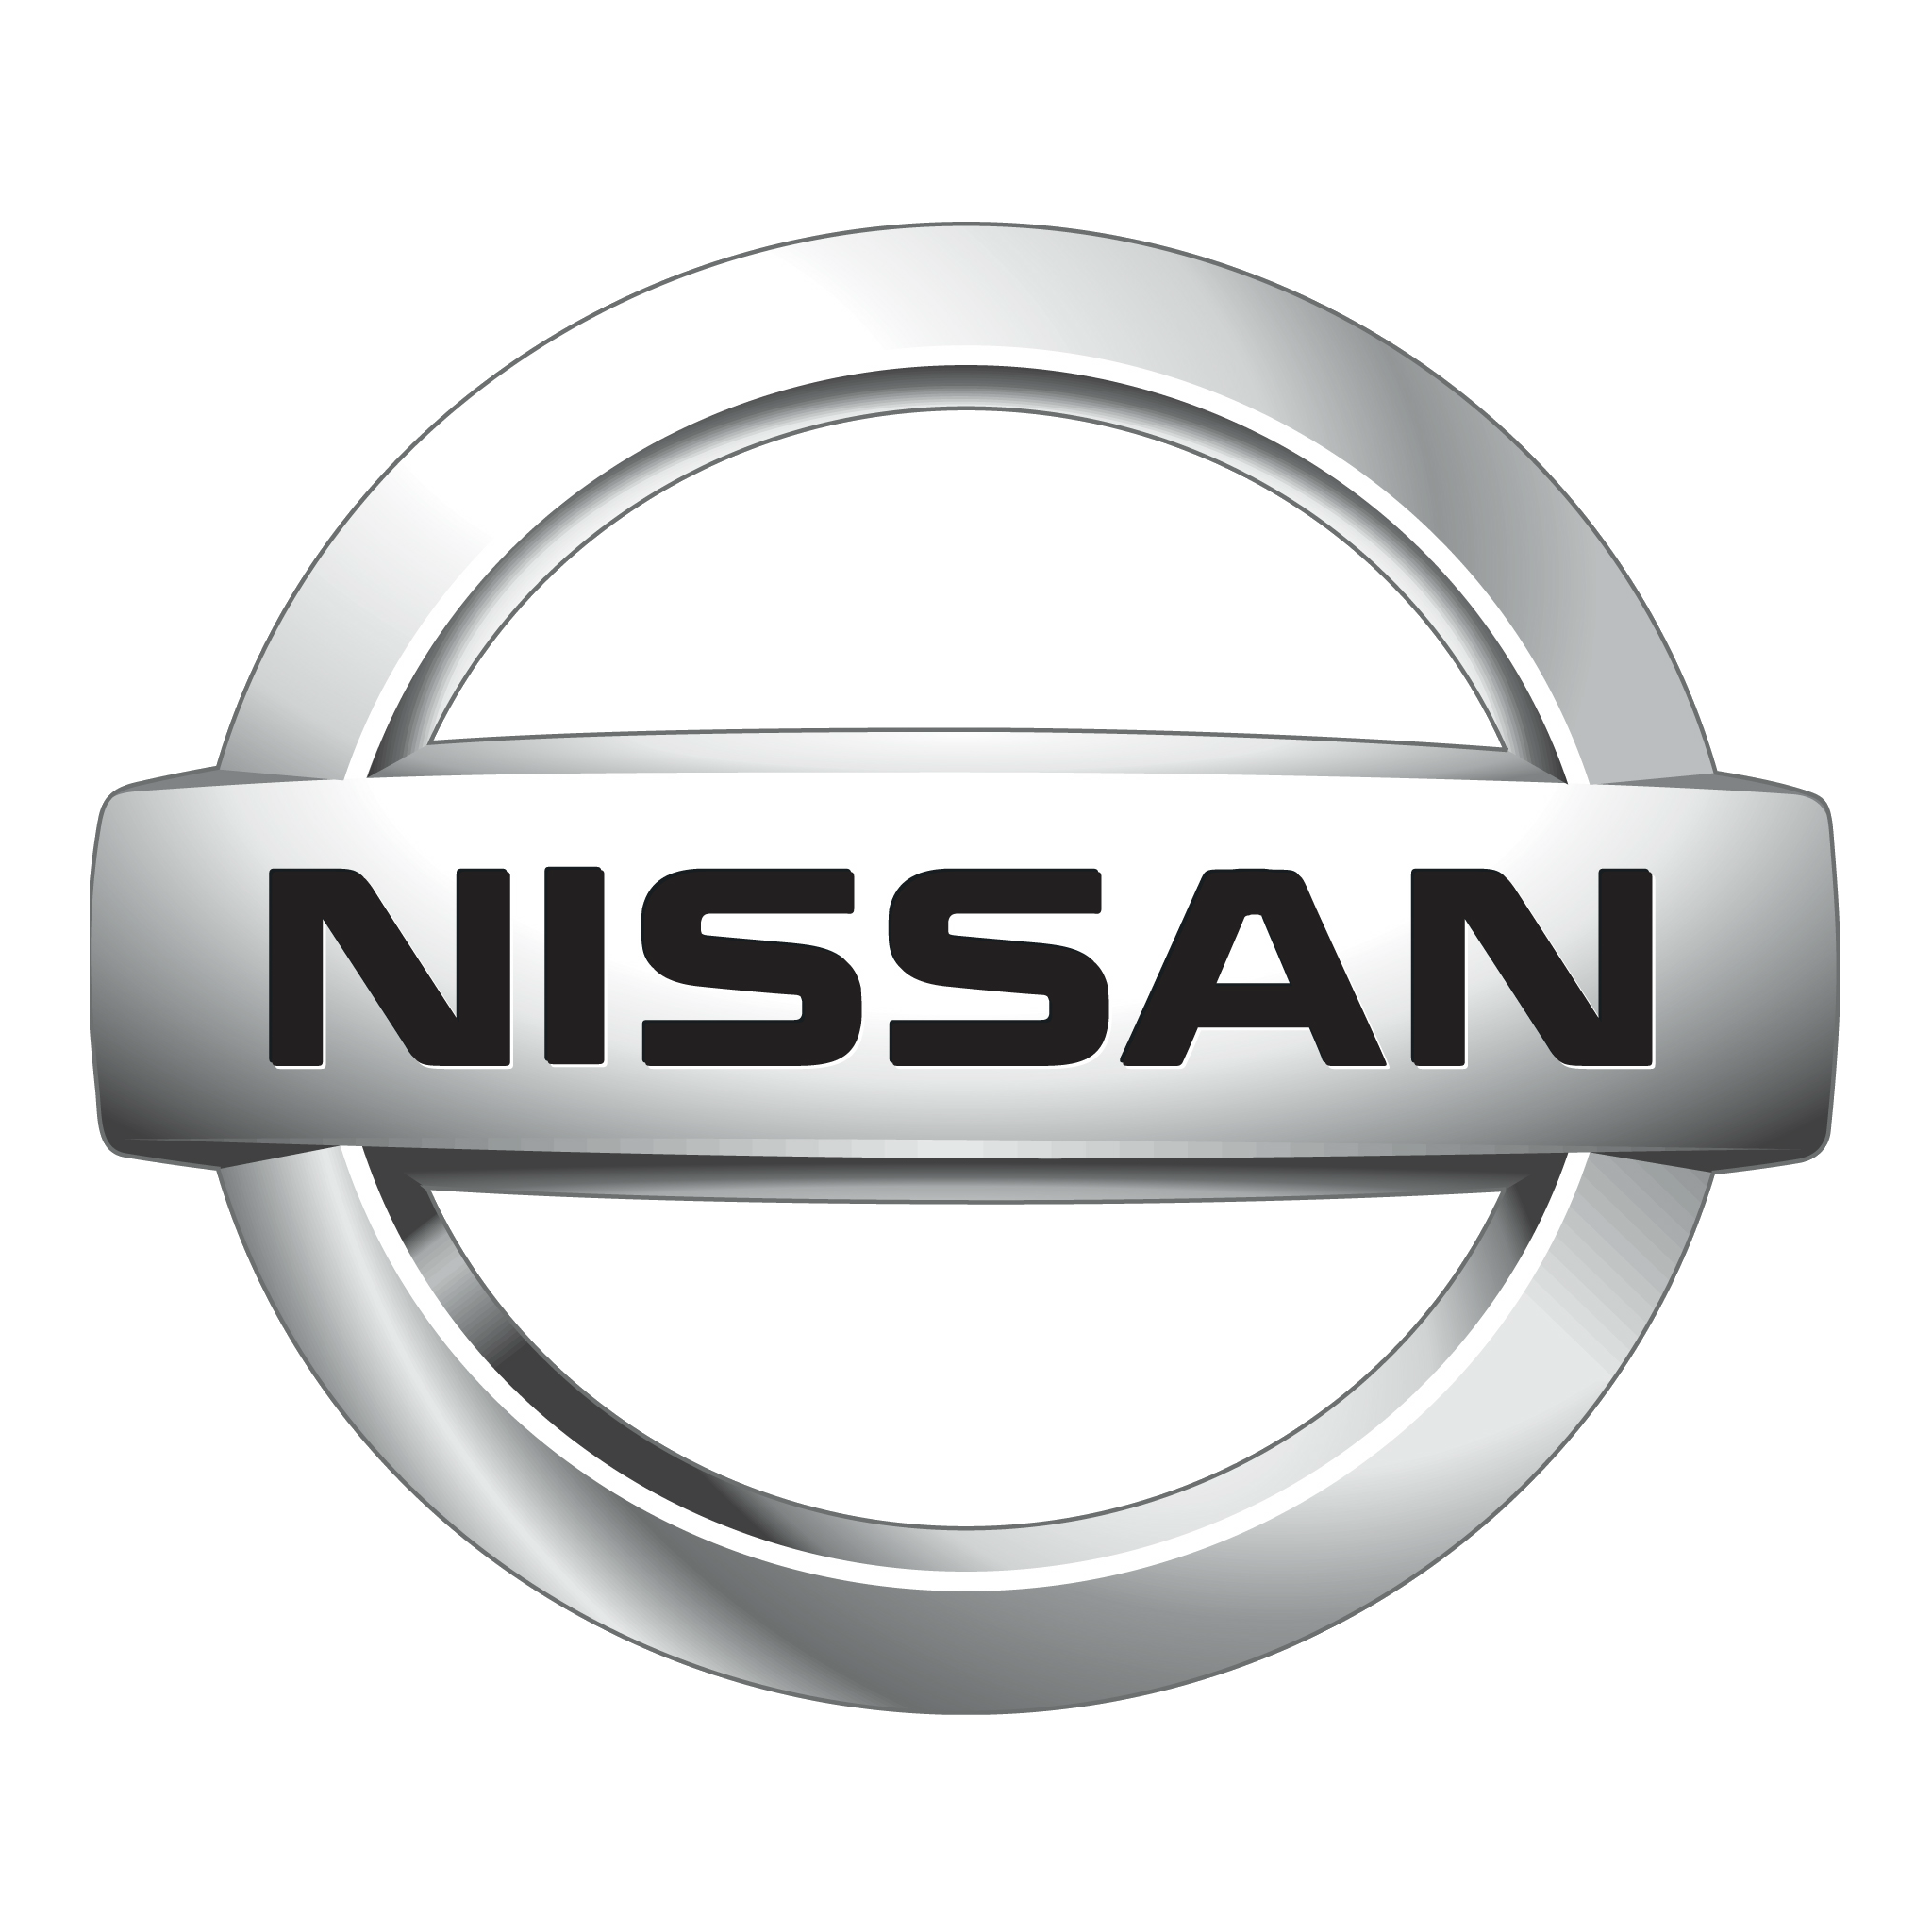 Nissan PNG - 36271